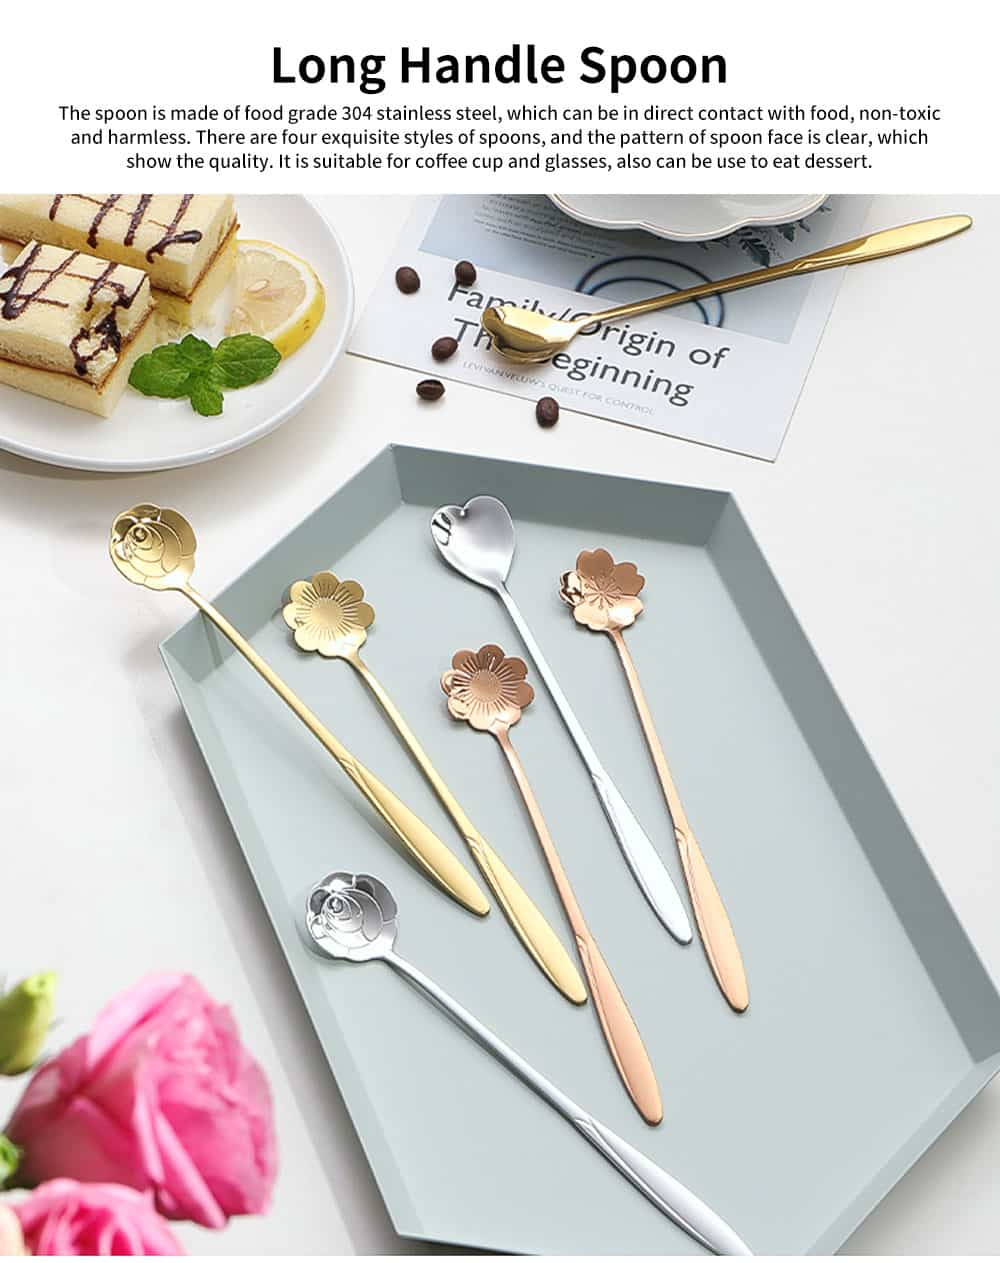 Stainless Steel Long Handle Spoon, Japanese Cherry Blossom Heart Shaped Loving Type Long Handle Coffee Spoon Ice Cream Spoon for Stirring 0